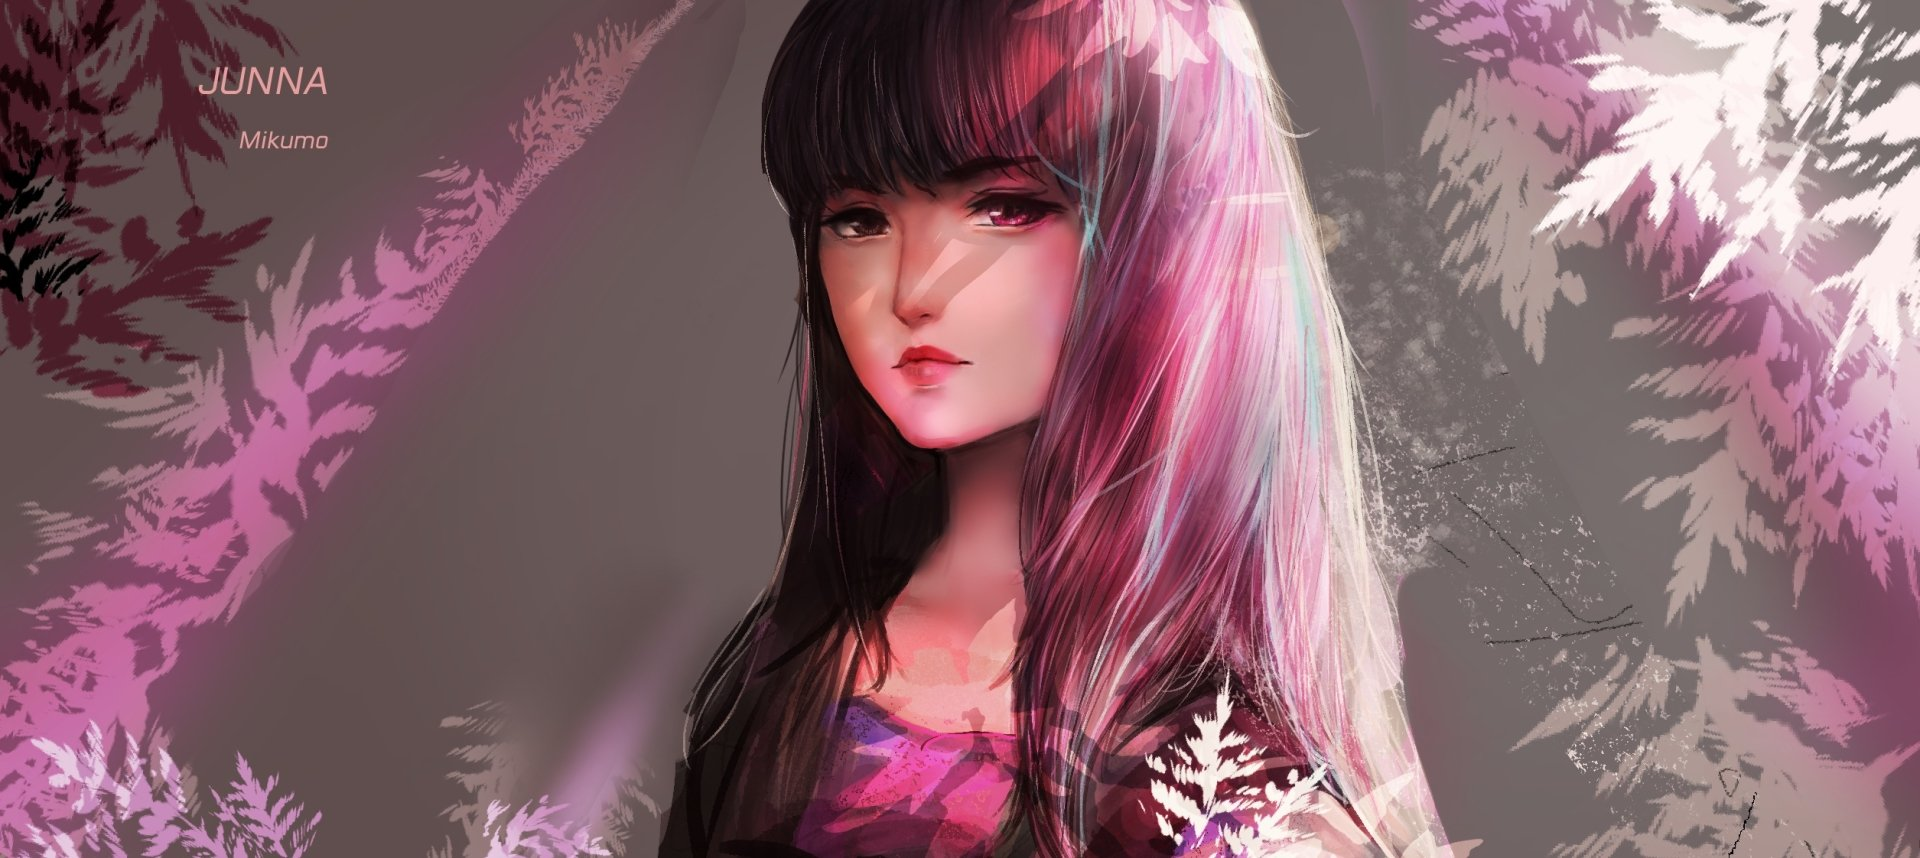 Wallpapers ID:993022